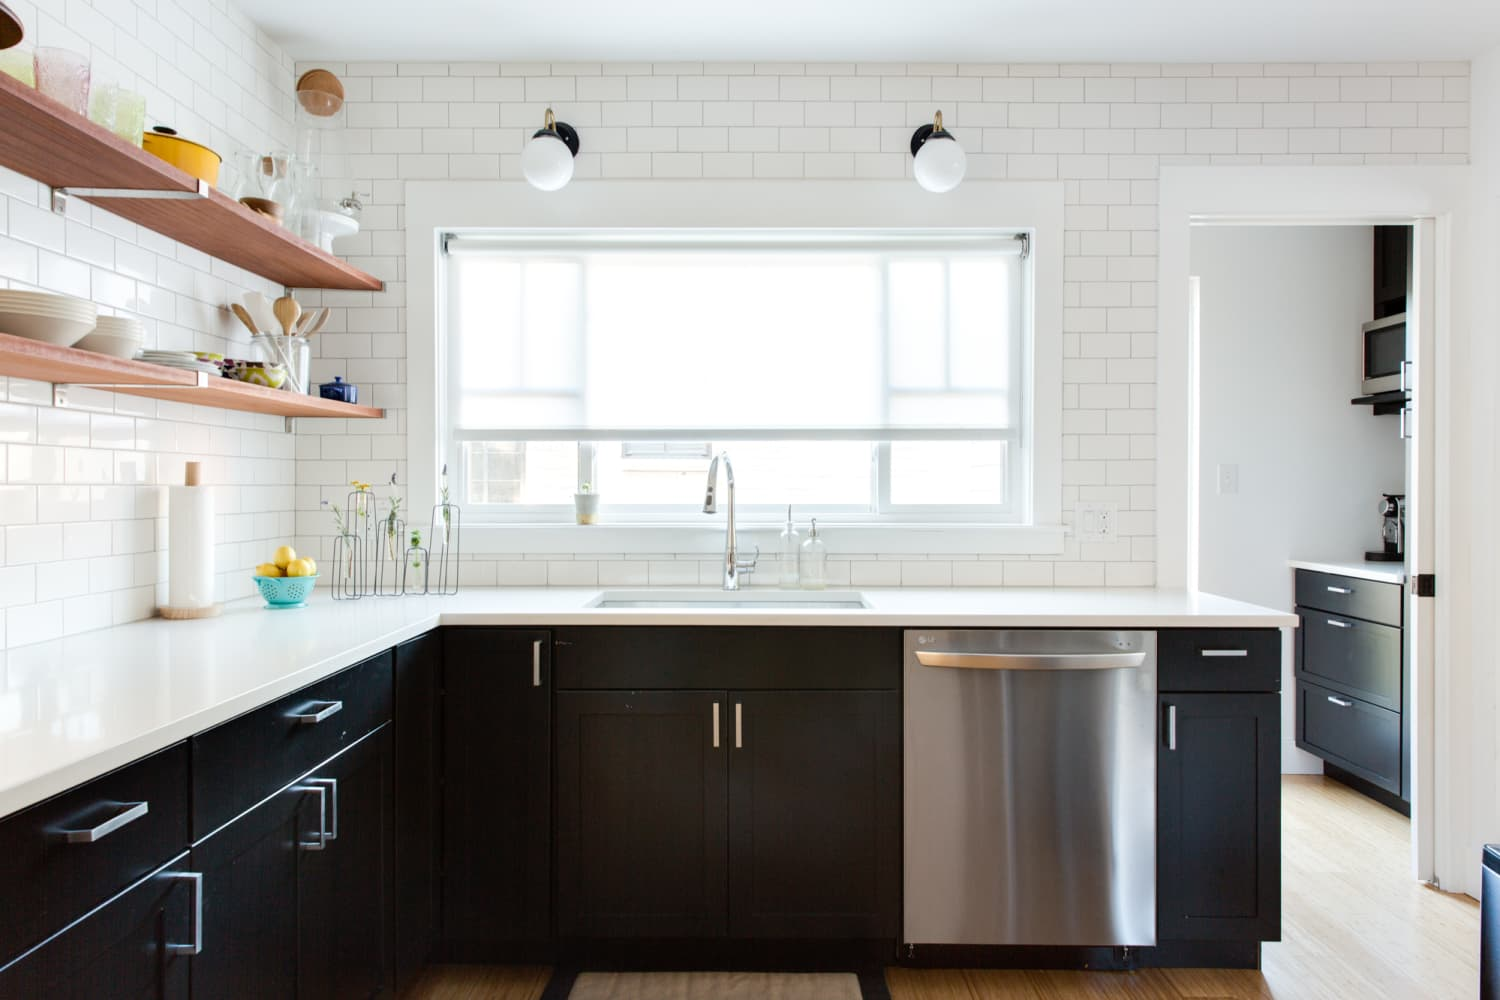 The 9 Deadly Sins of Bad Kitchens